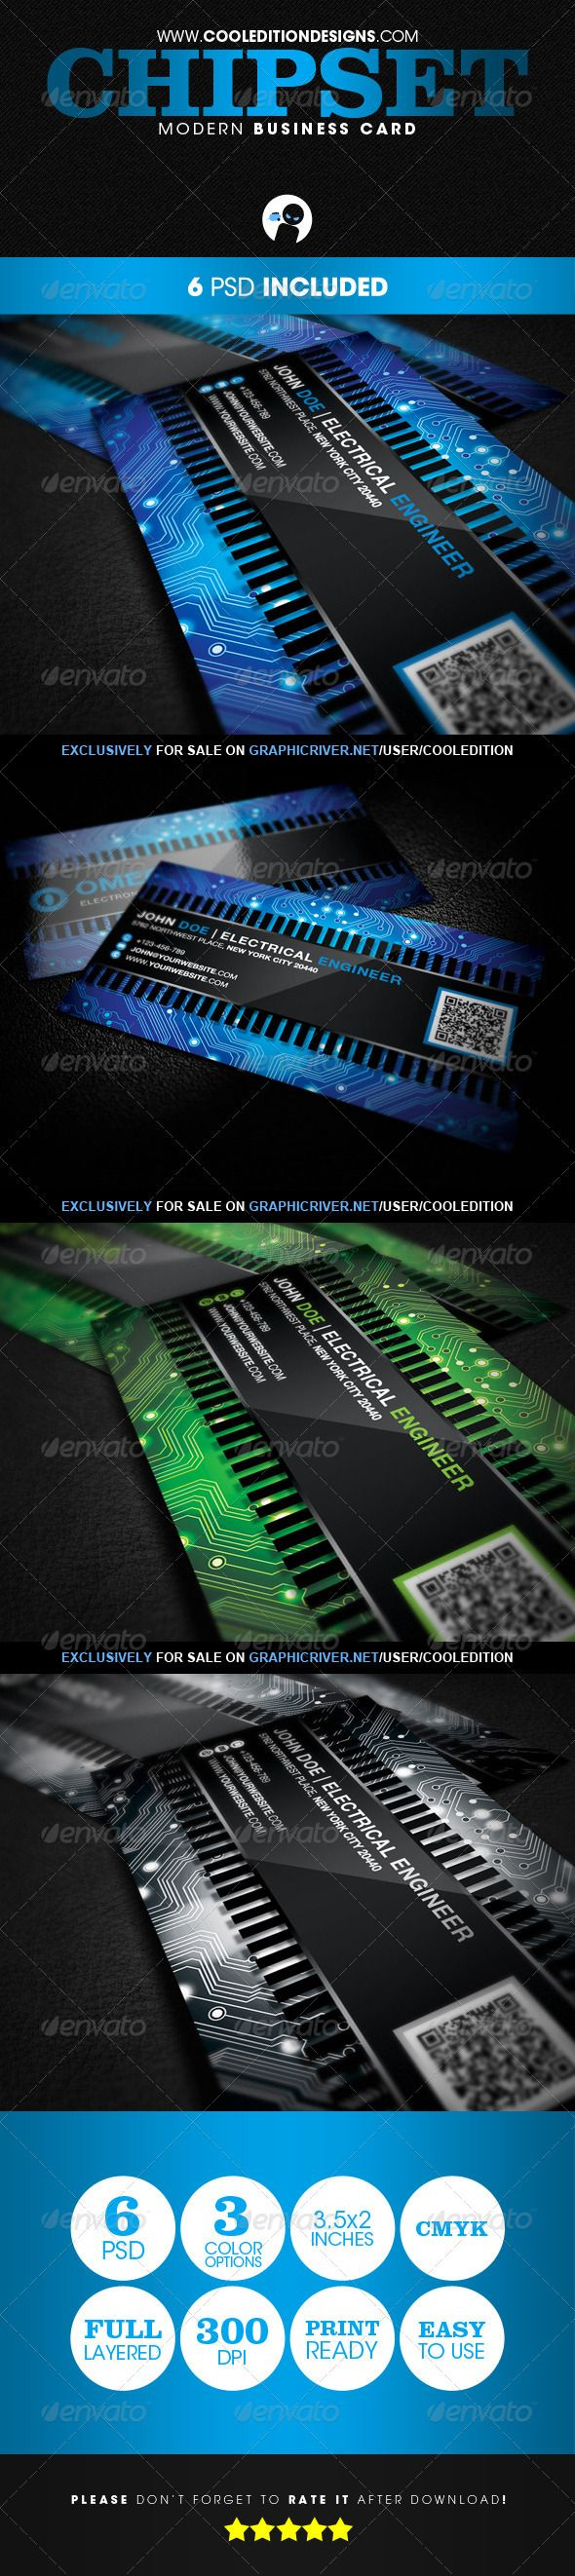 Chipset Modern - Business Card | $6